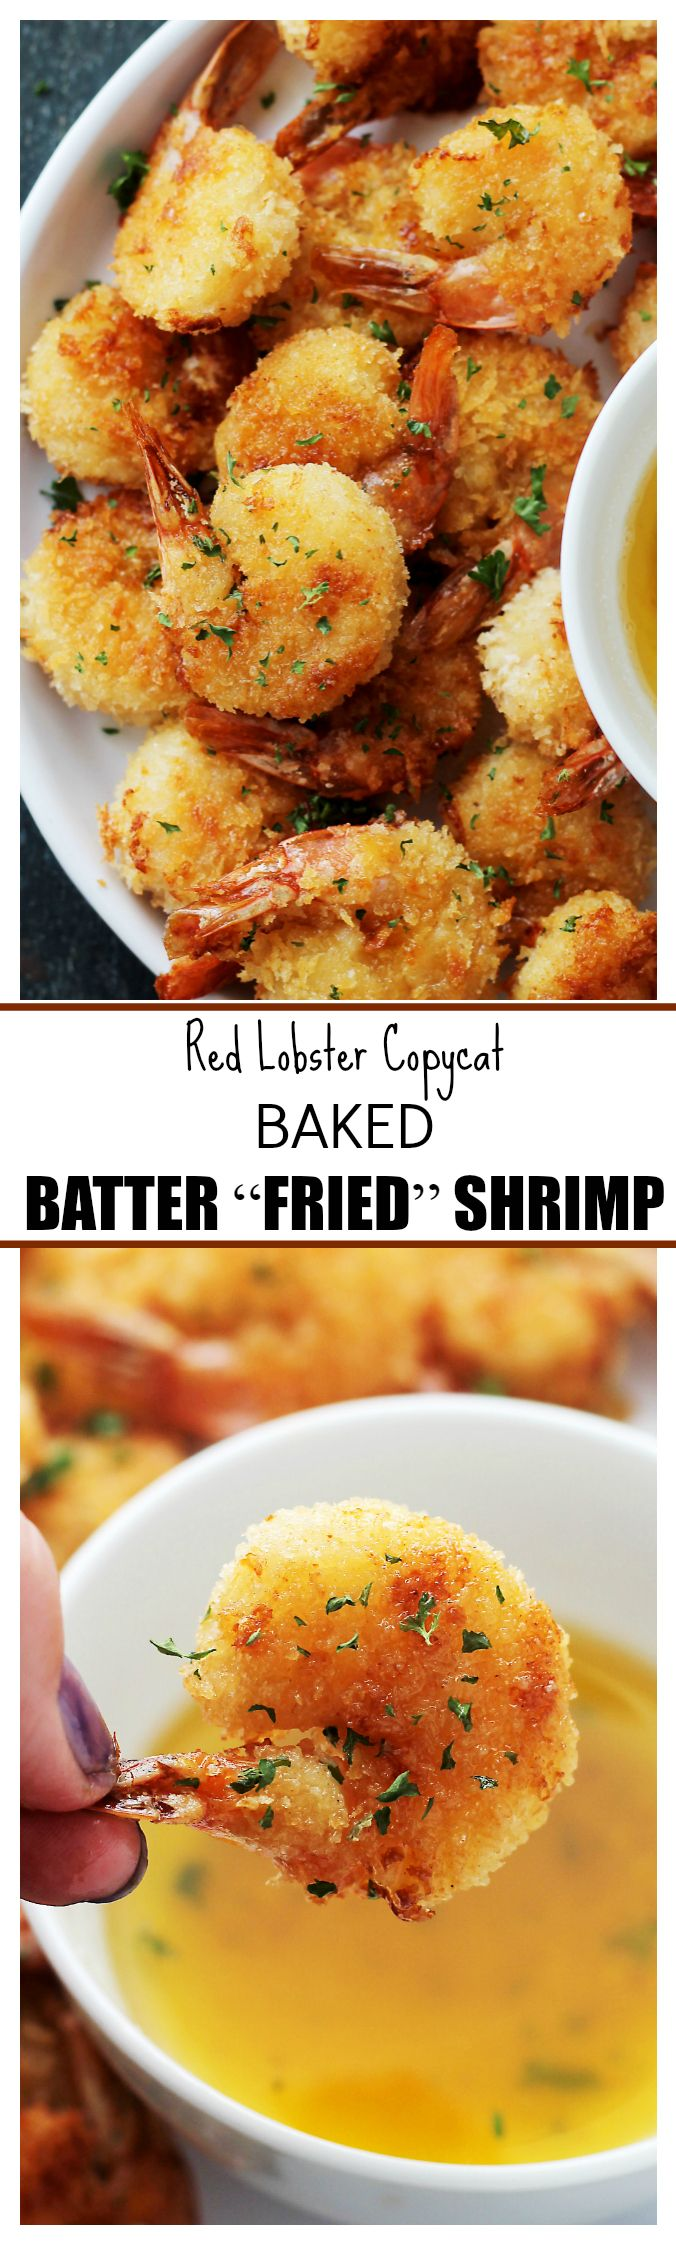 Baked Batter Fried Shrimp With Garlic Dipping Sauce If You Are A Fan